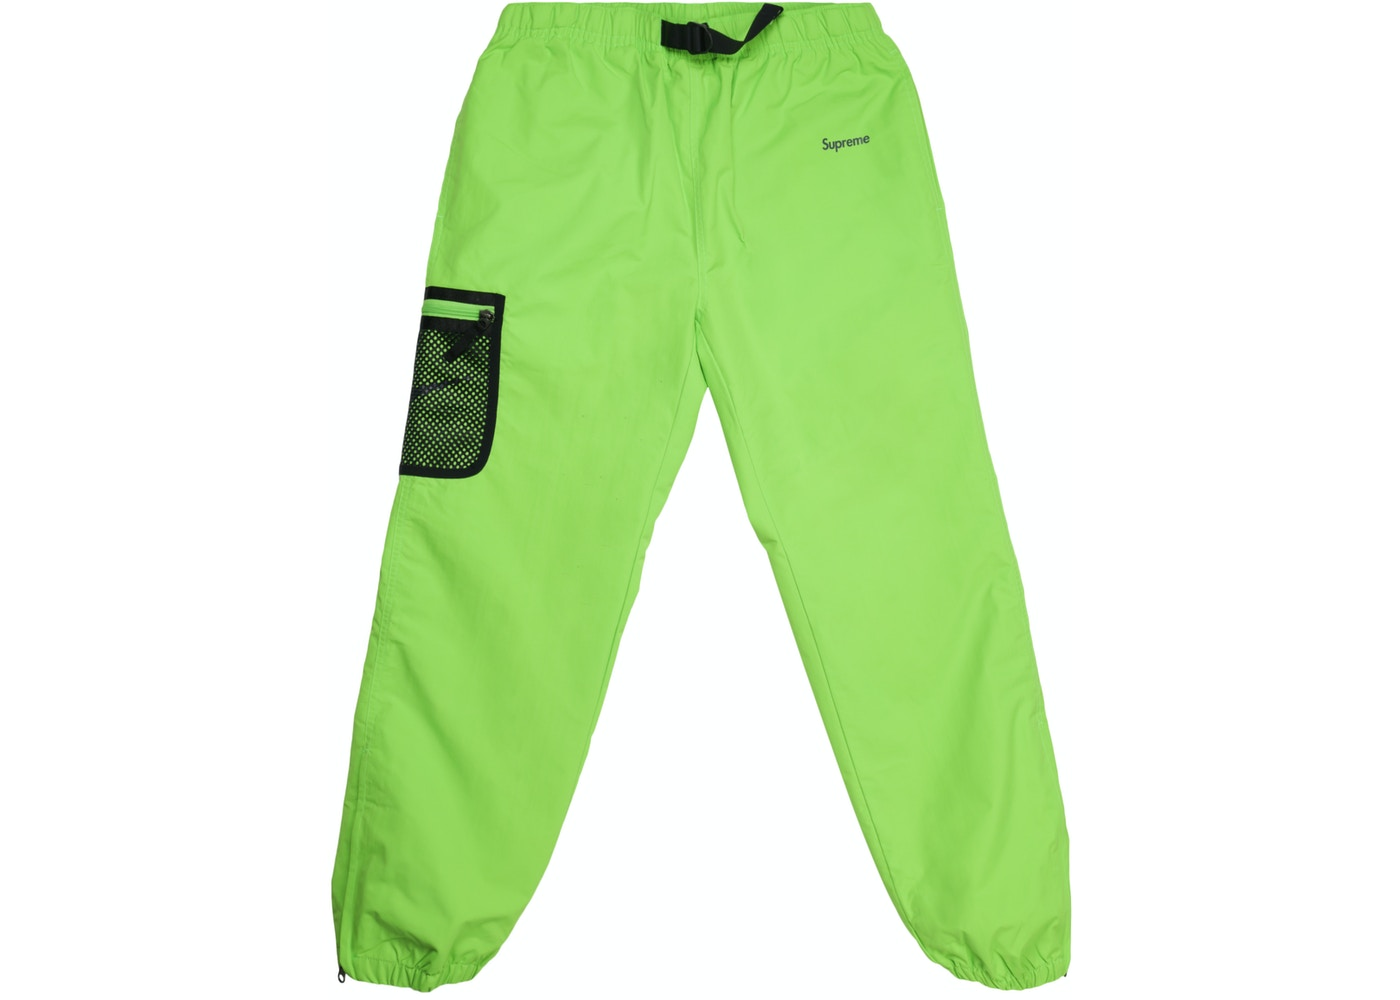 0a0301184a6a Supreme Nike Trail Running Pant Green - FW17